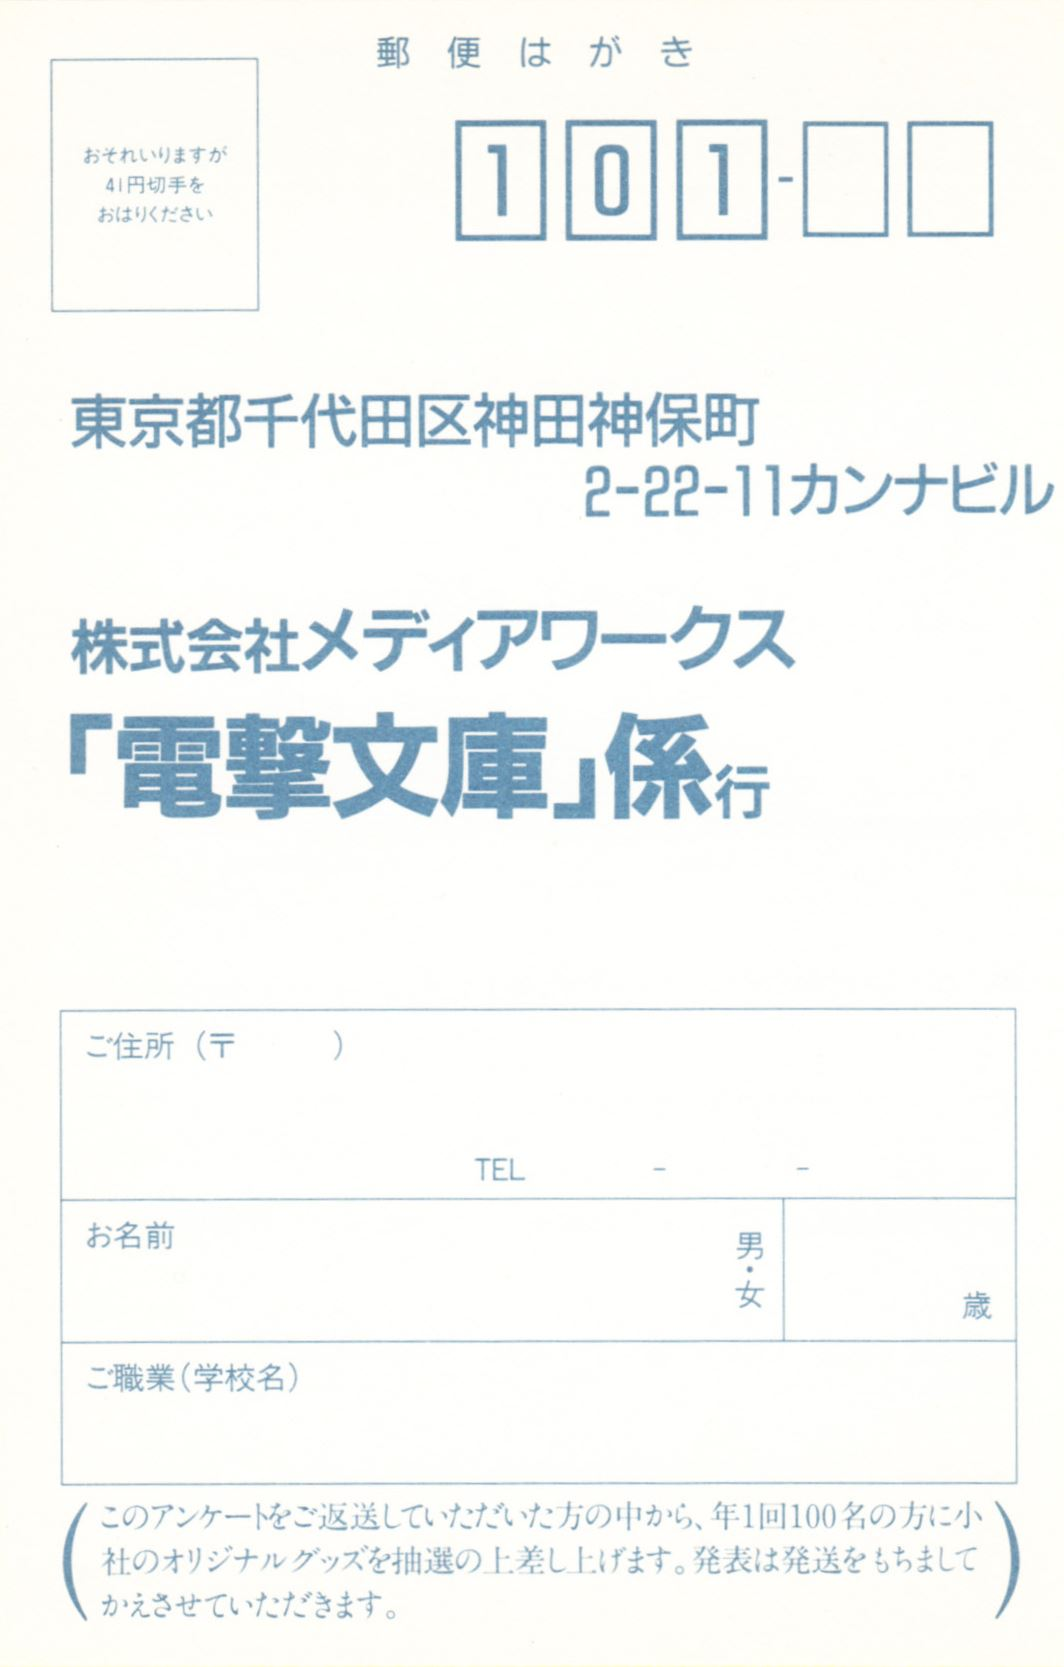 Novel - Dungeon Master - JP - Registration Card - Front - Scan